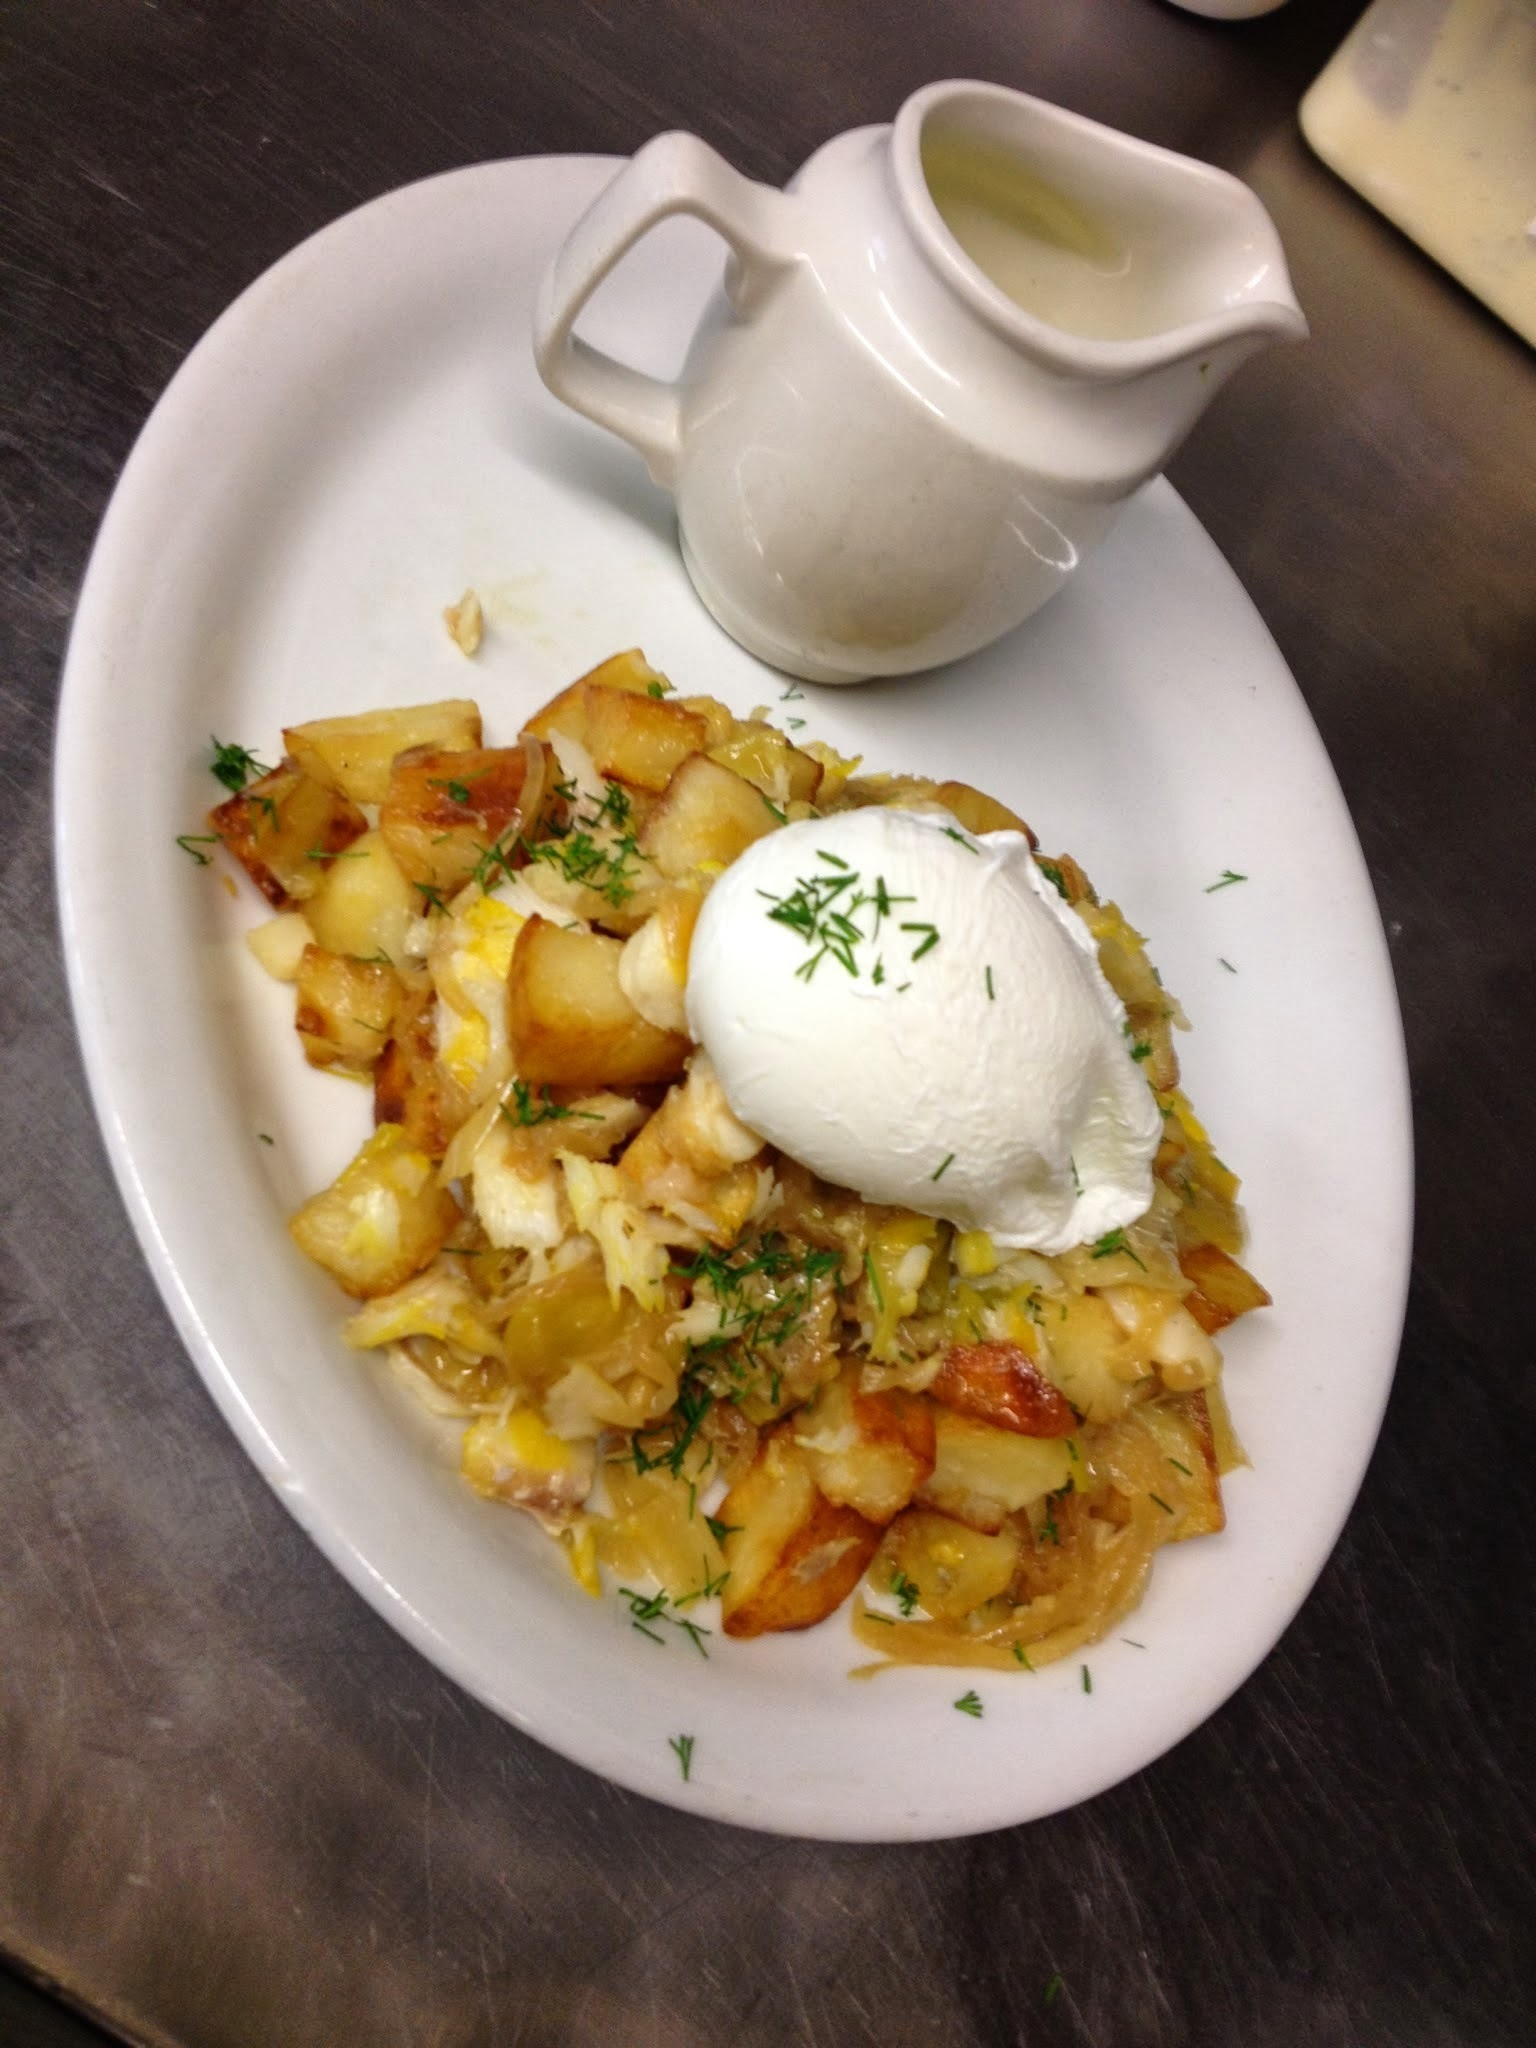 Smoked Haddock & Leek Hash, Poached Egg, Parsley Sauce